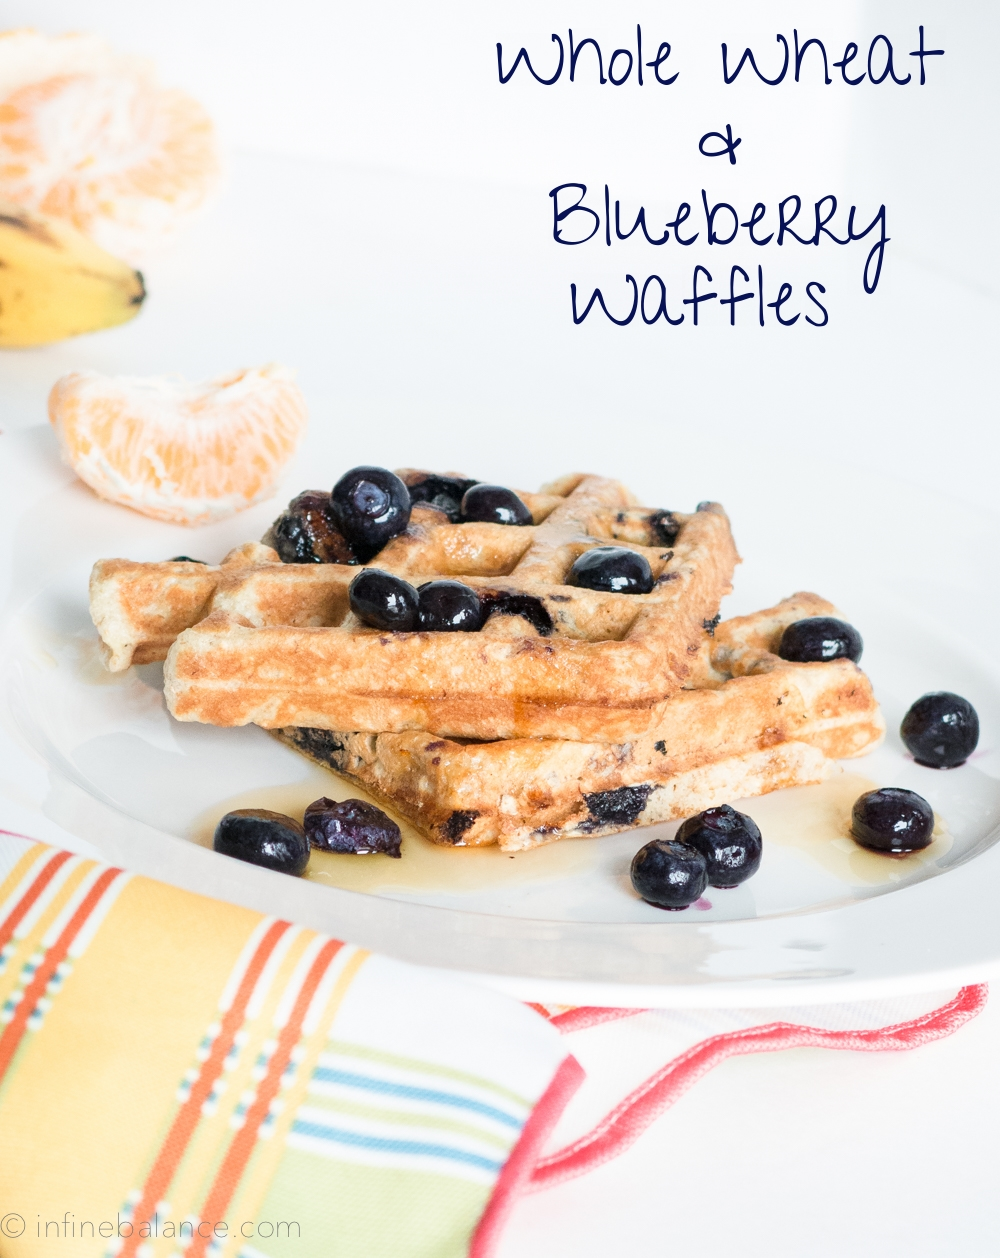 Whole Wheat and Blueberry Waffles #breakfast #recipe